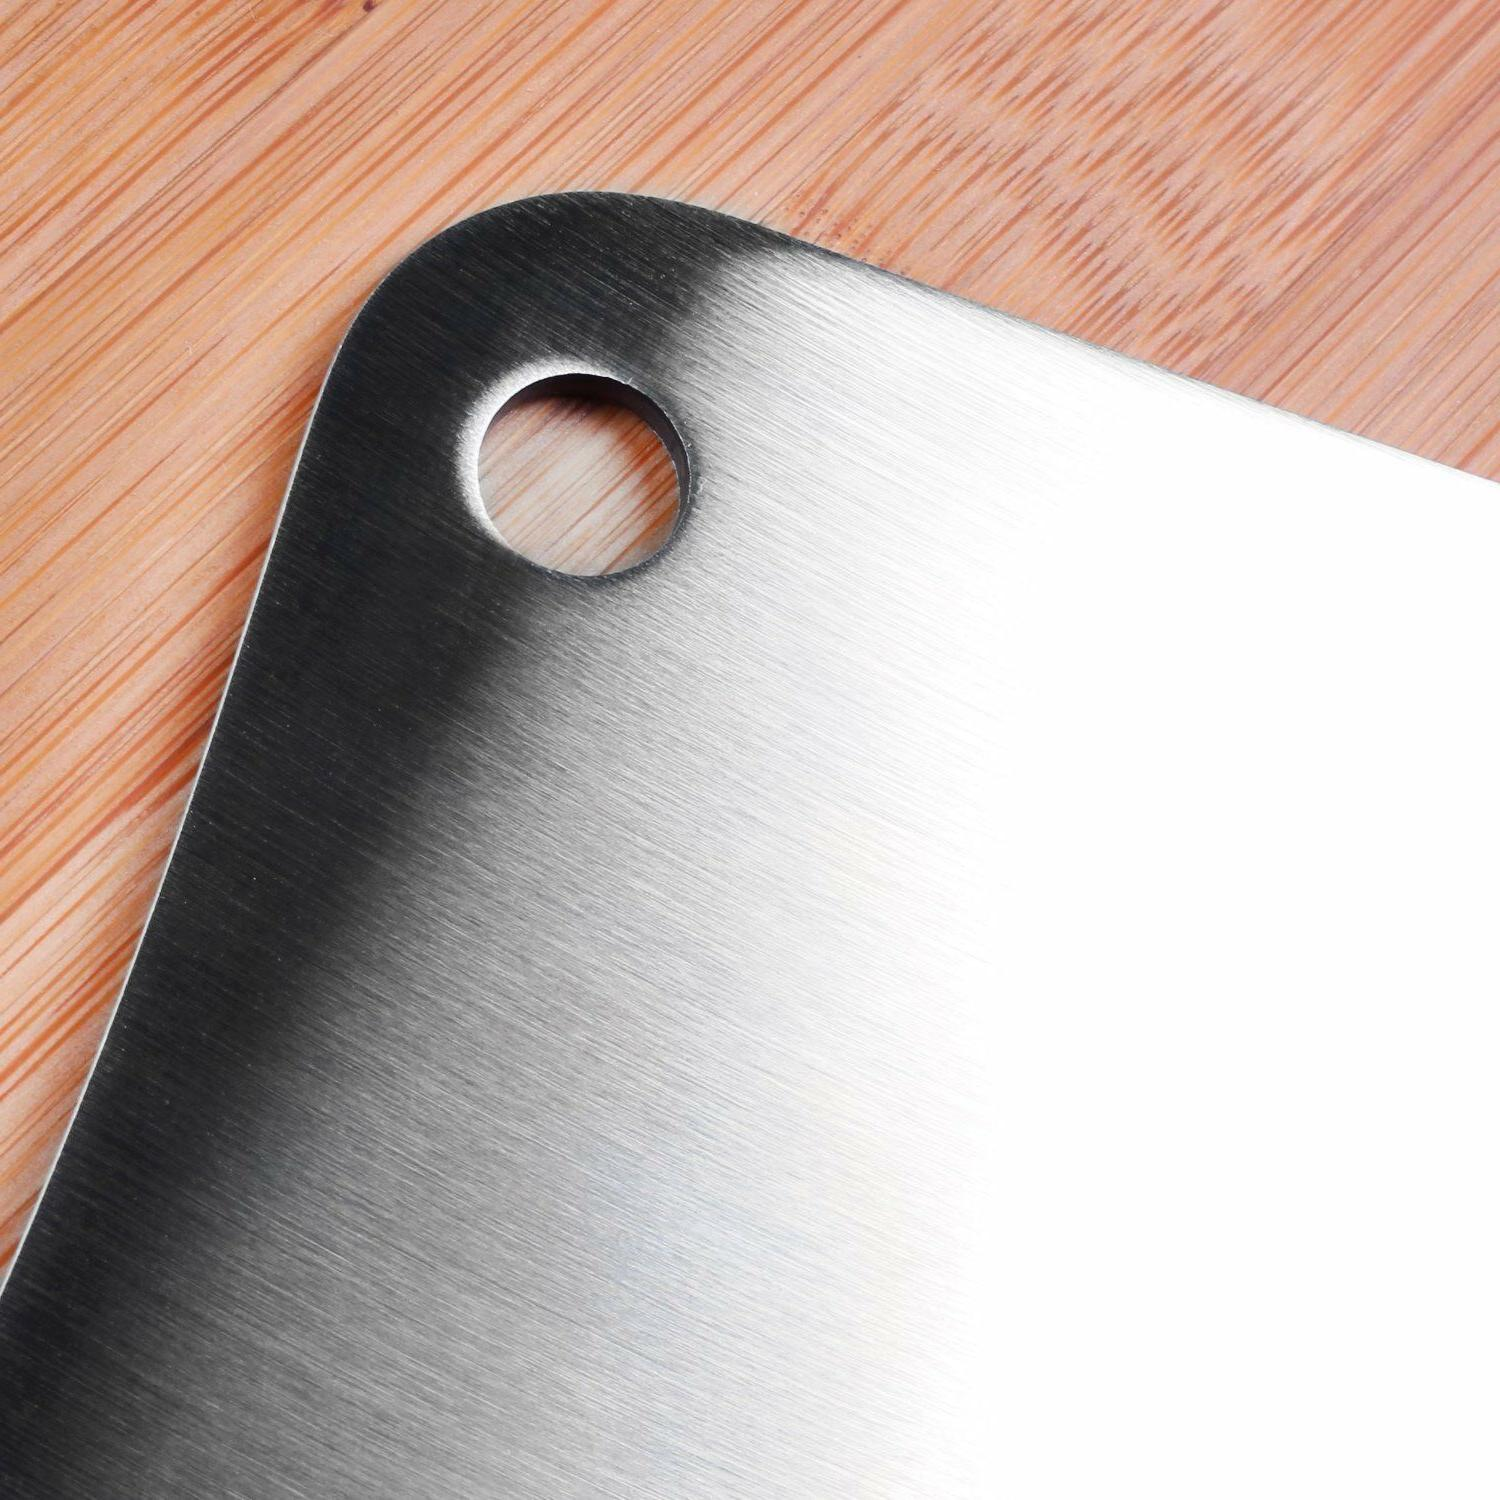 "Cleaver Stainless Steel Butcher 7"" Home"